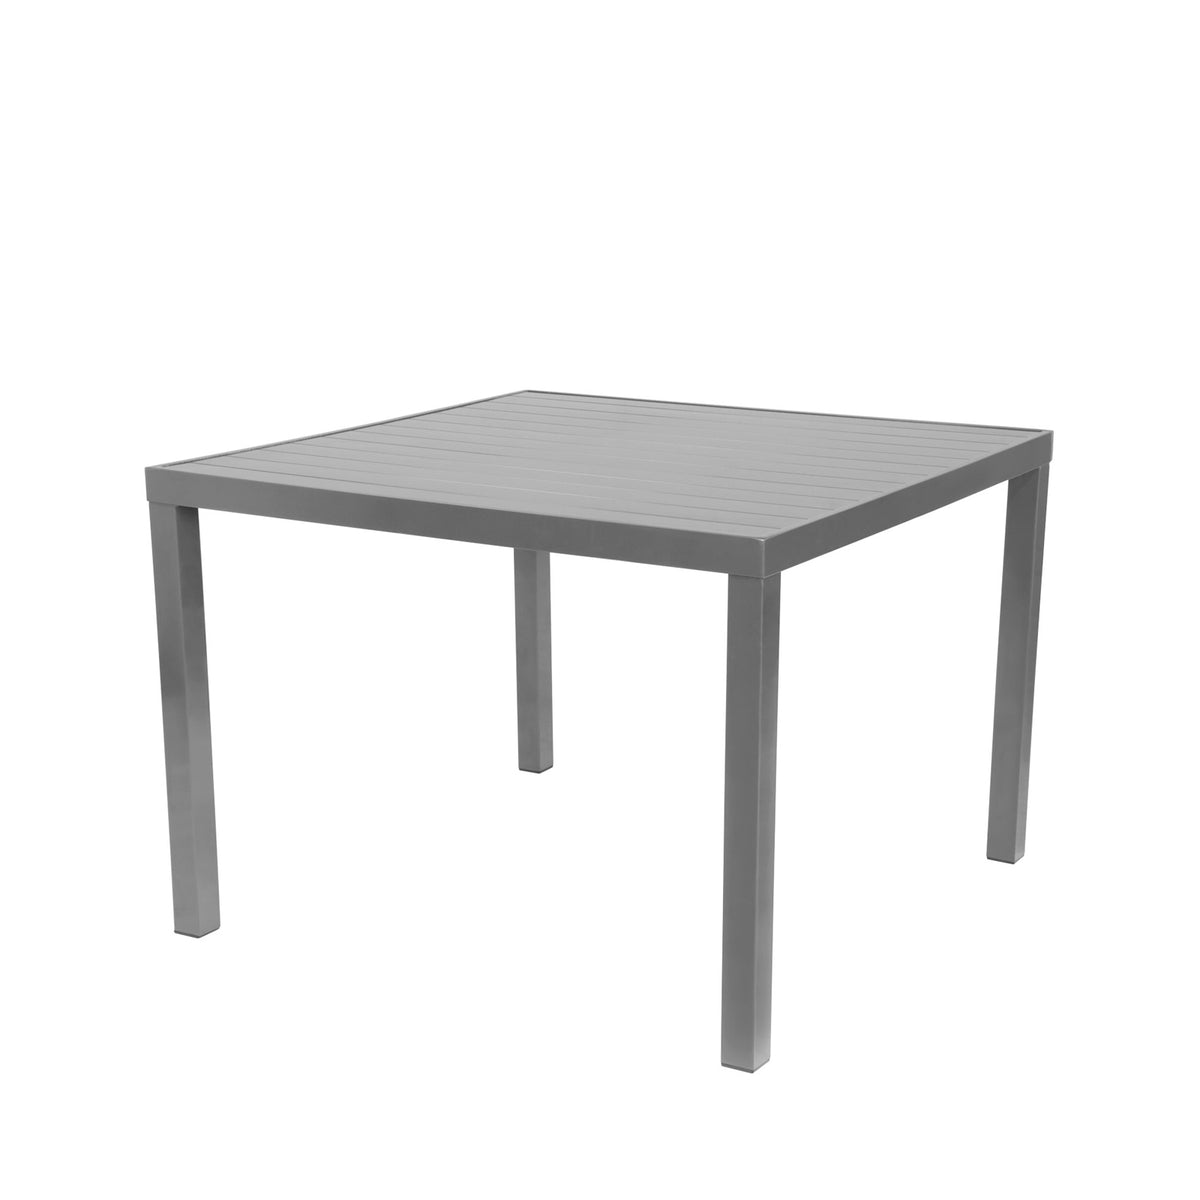 "Source Furniture Fusion Square 32"" x 32"" Bar Table Top"